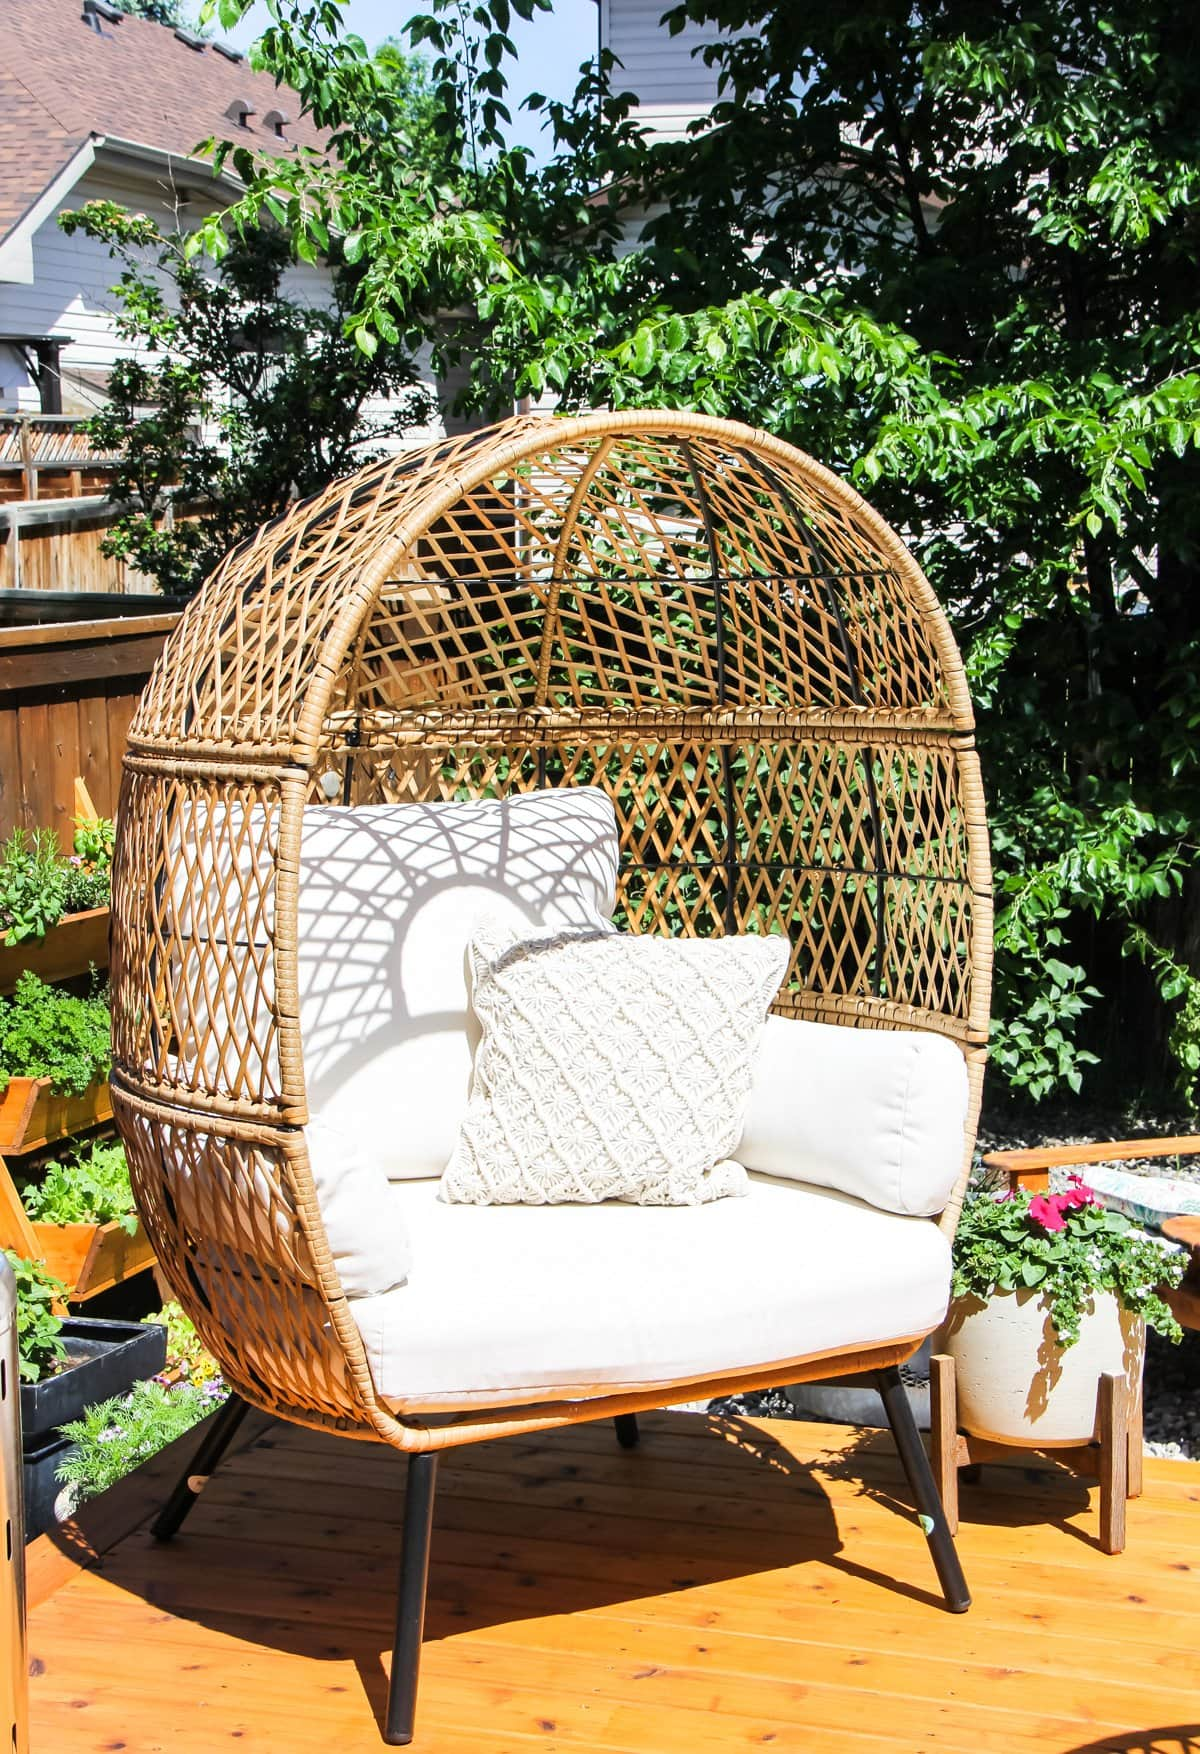 a wicker egg chair on a summer deck. in the background are trees and flowers